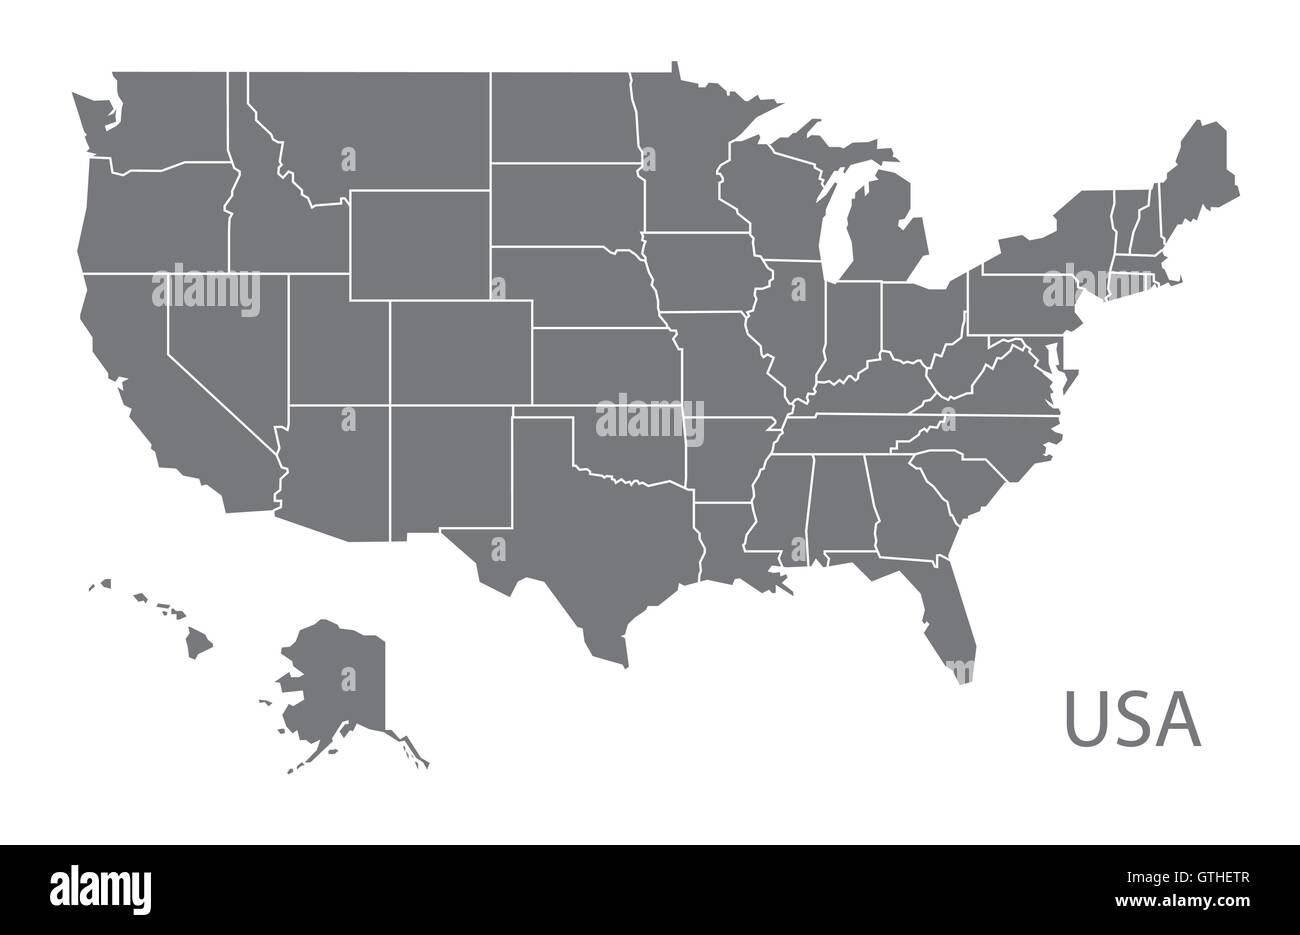 United States Map Vector Stockfotos & United States Map Vector ...